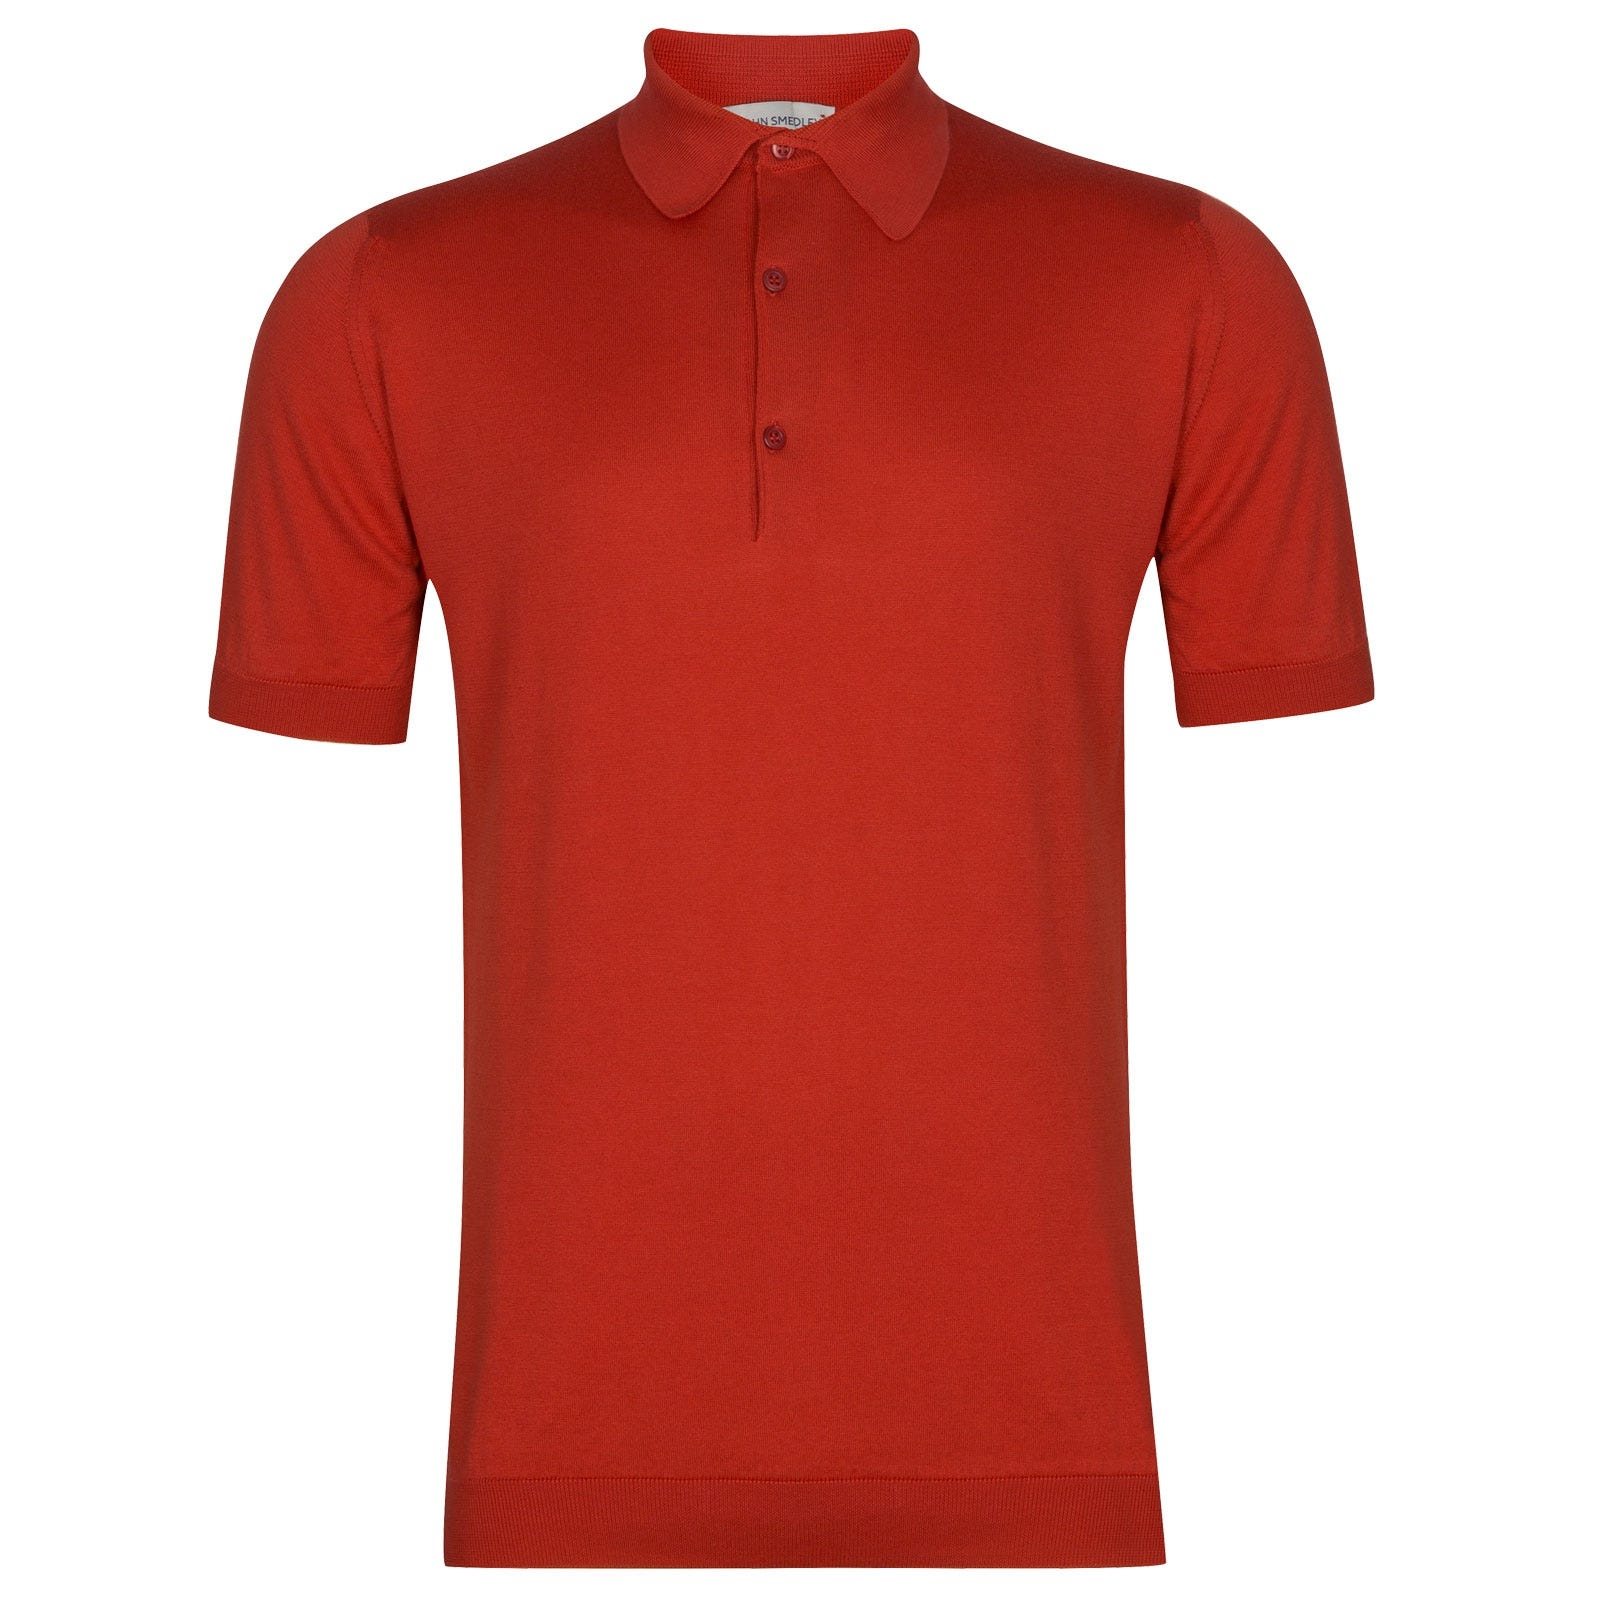 John Smedley Adrian in Red Admiral Shirt-LGE